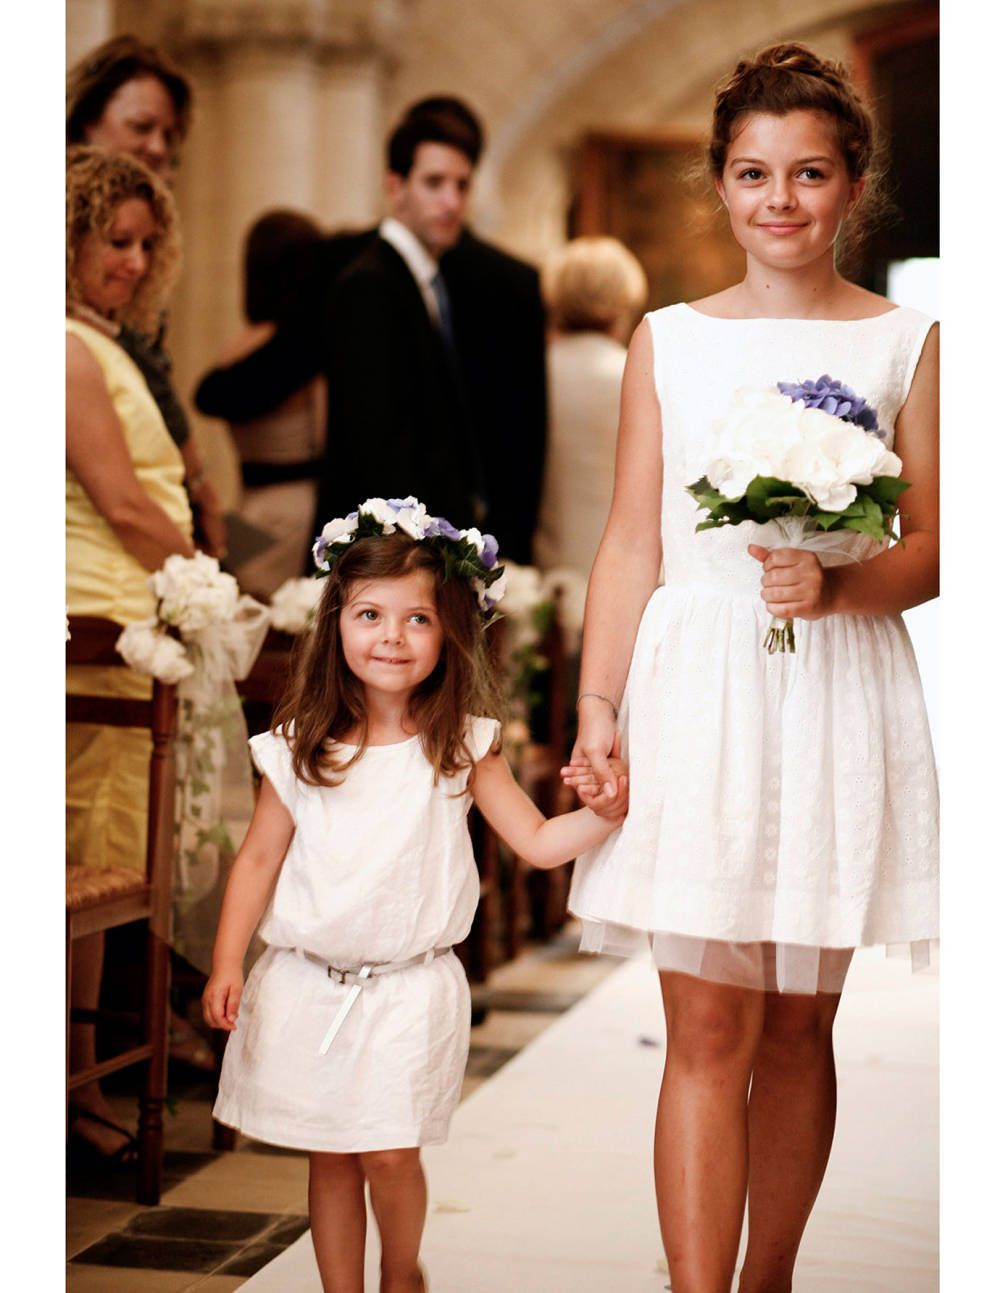 dc41b42d66 Adorable flower girls walking down the aisle. Photograph by Belathée  Photography.